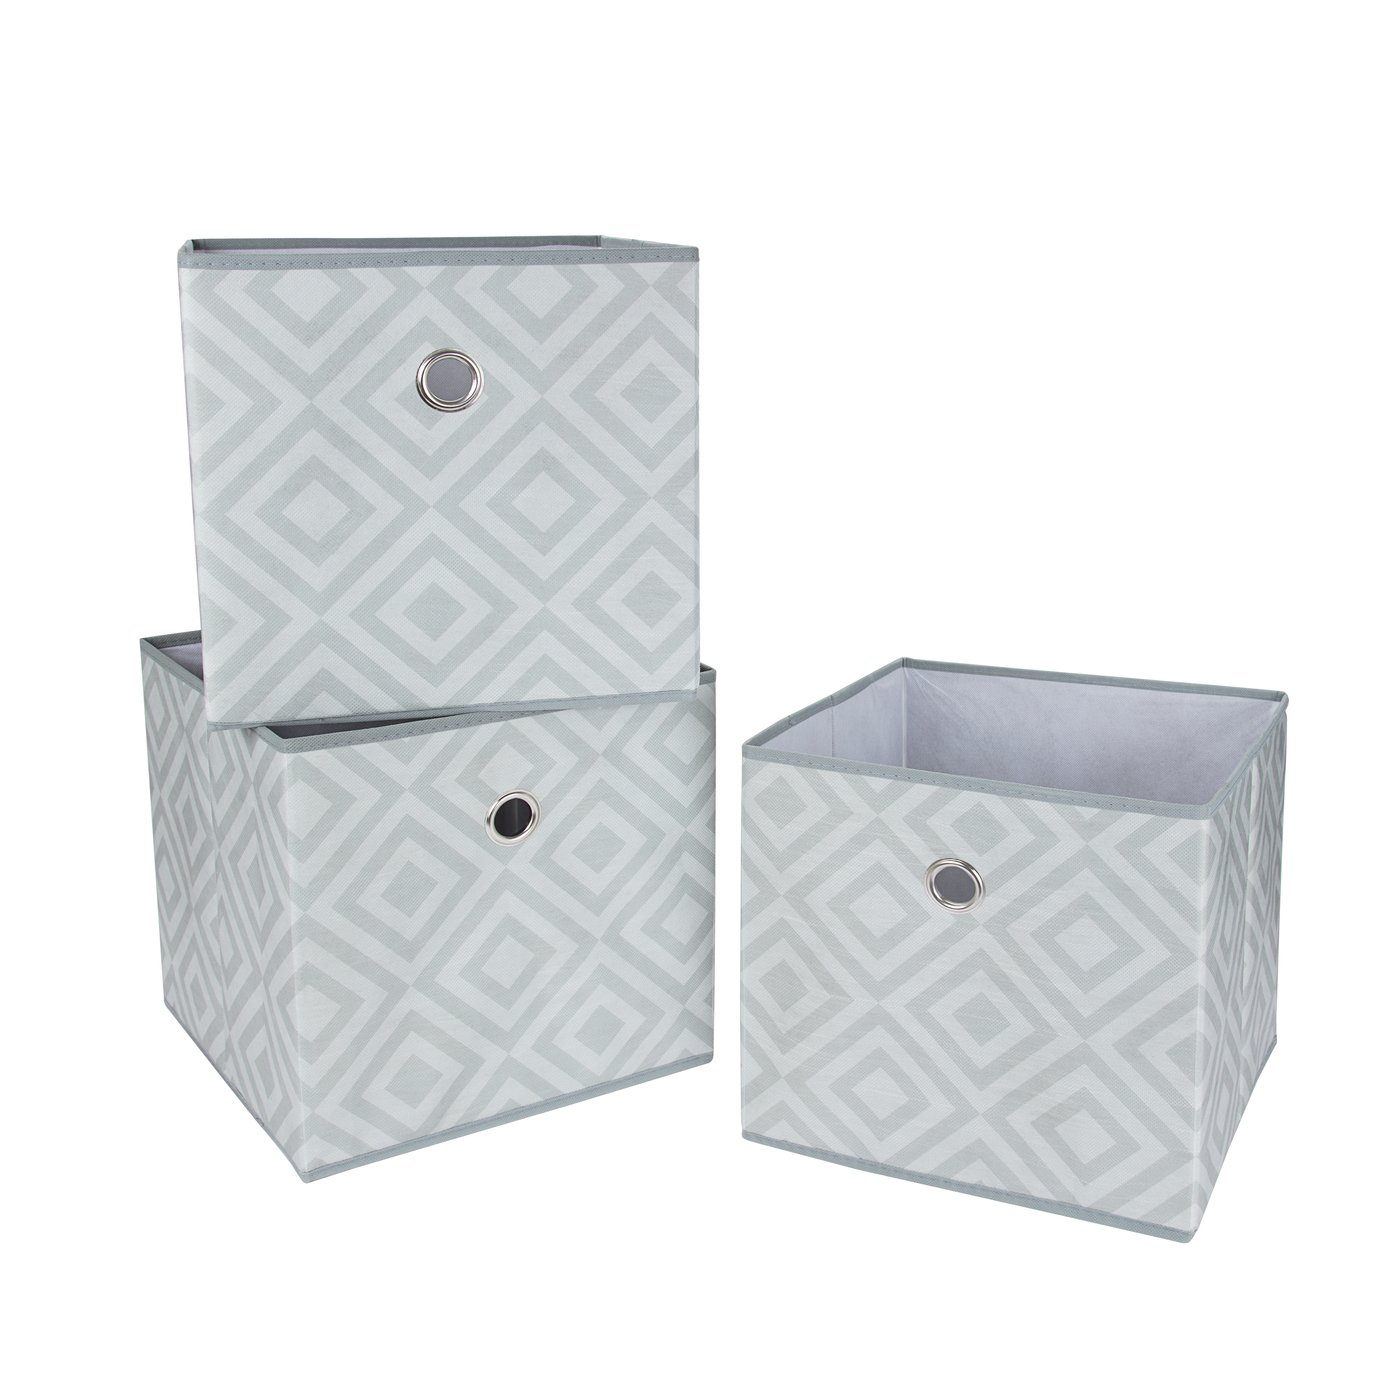 Amazon.com: SbS Large Collapsible Foldable Fabric Storage Boxes, Cubes,  Bins, Baskets. Gray Diamond Pattern (3 Pack). Each Storage Bin Measures  11.8 Inches ...